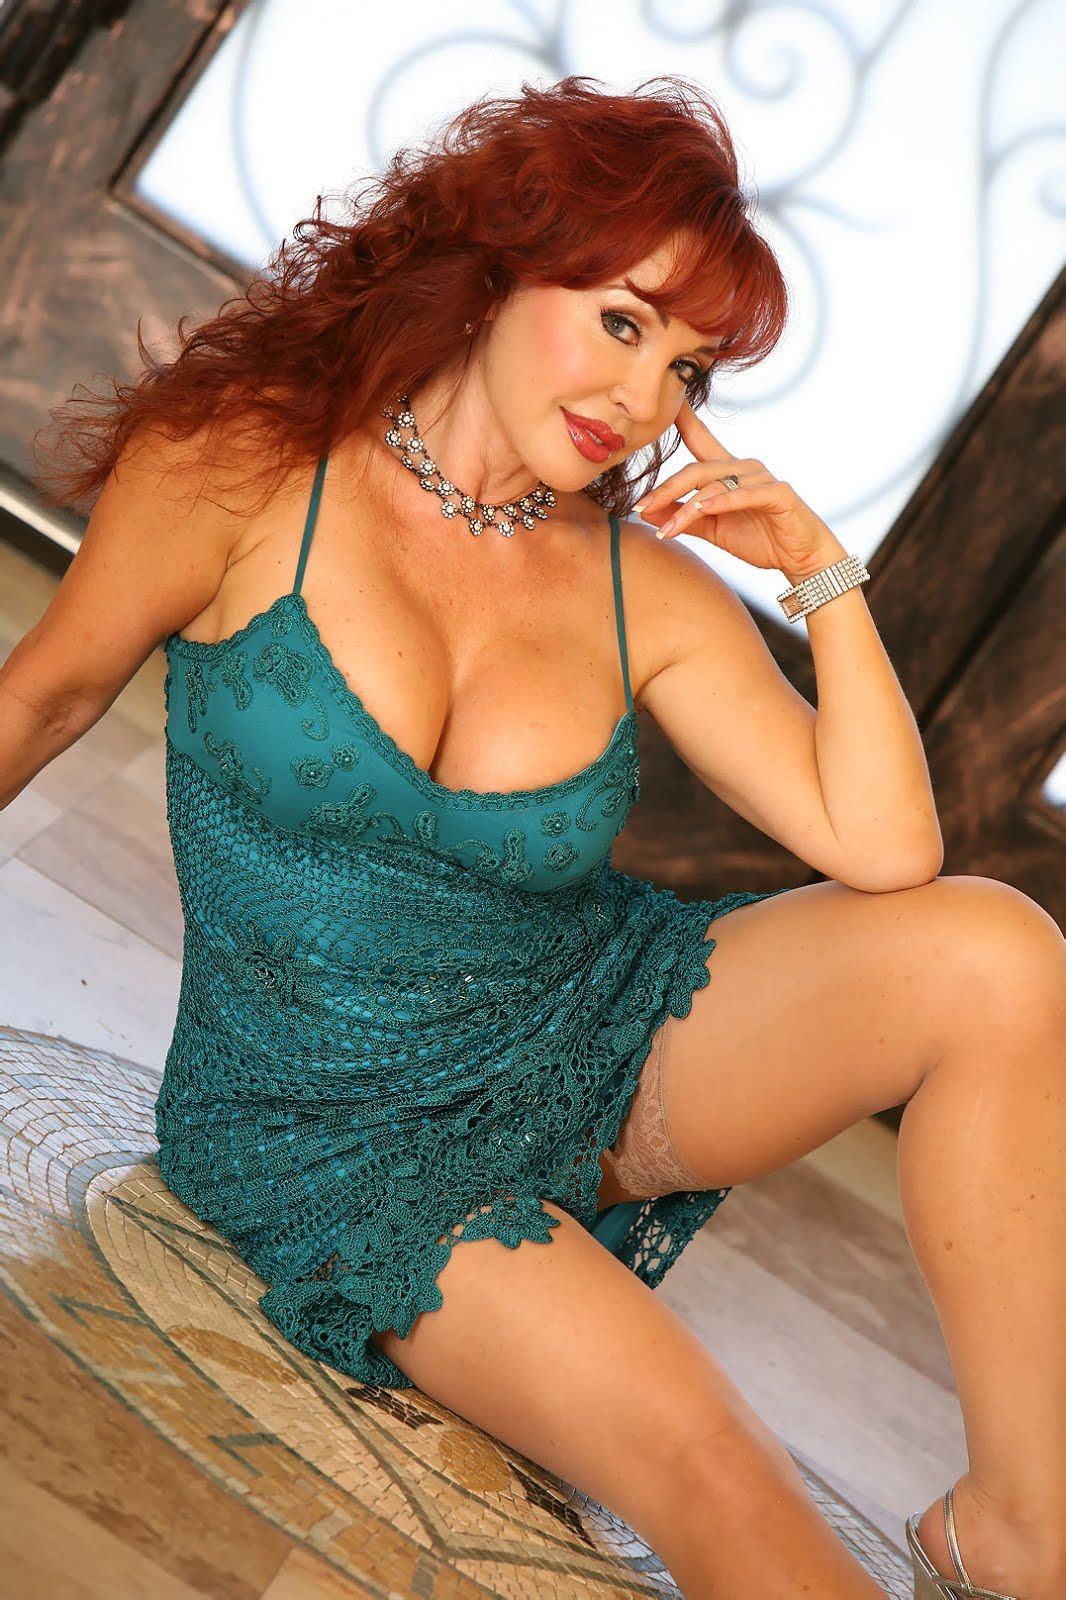 vanessa bella cougar | archive of old women: mature cougars | women